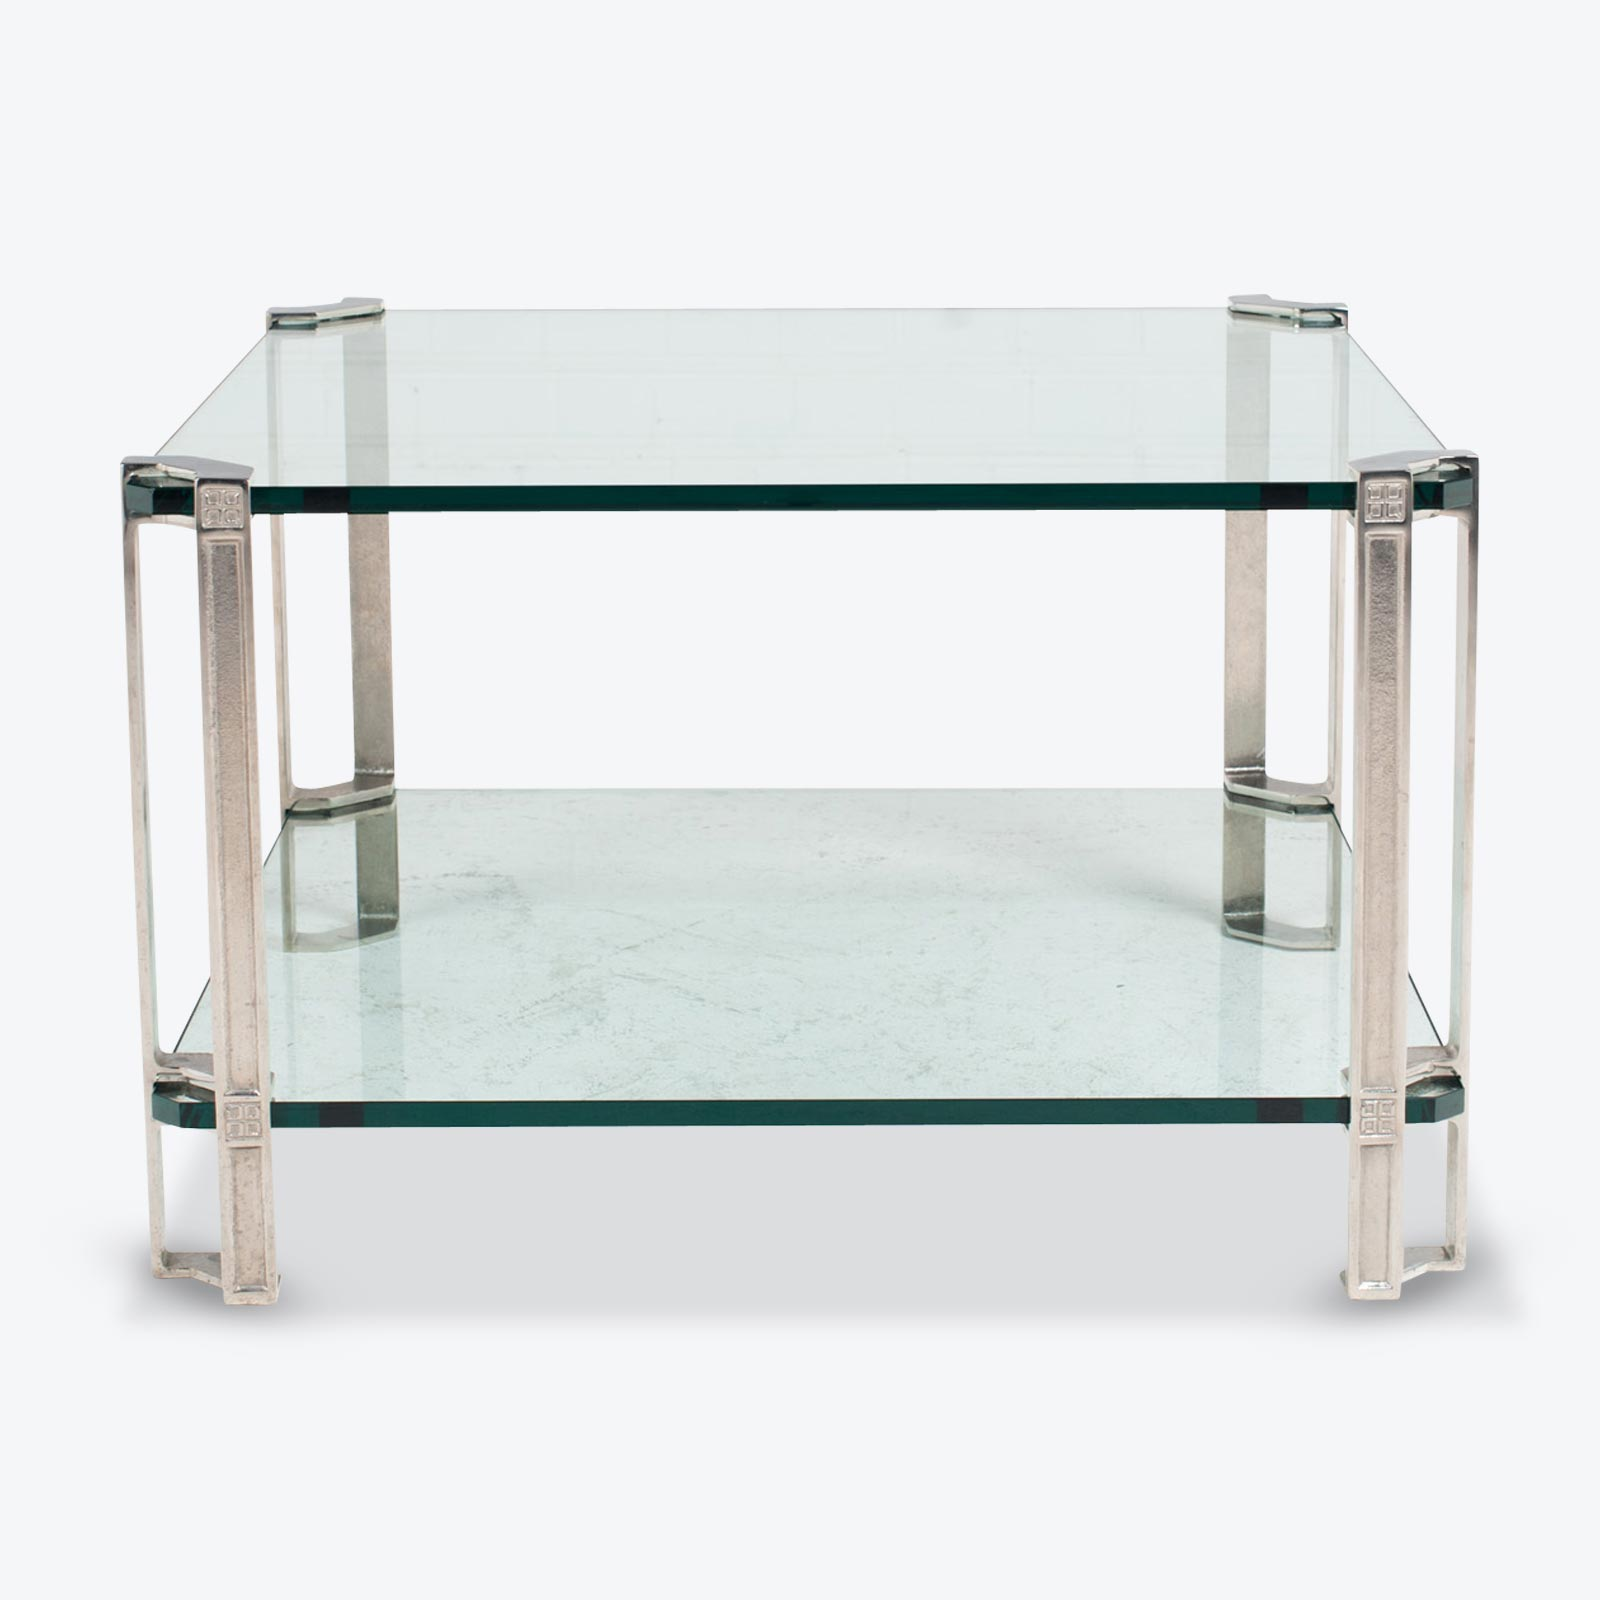 Large Side Table By Peter Ghyczy In Brass And Glass 1970s Netherlands.jpg